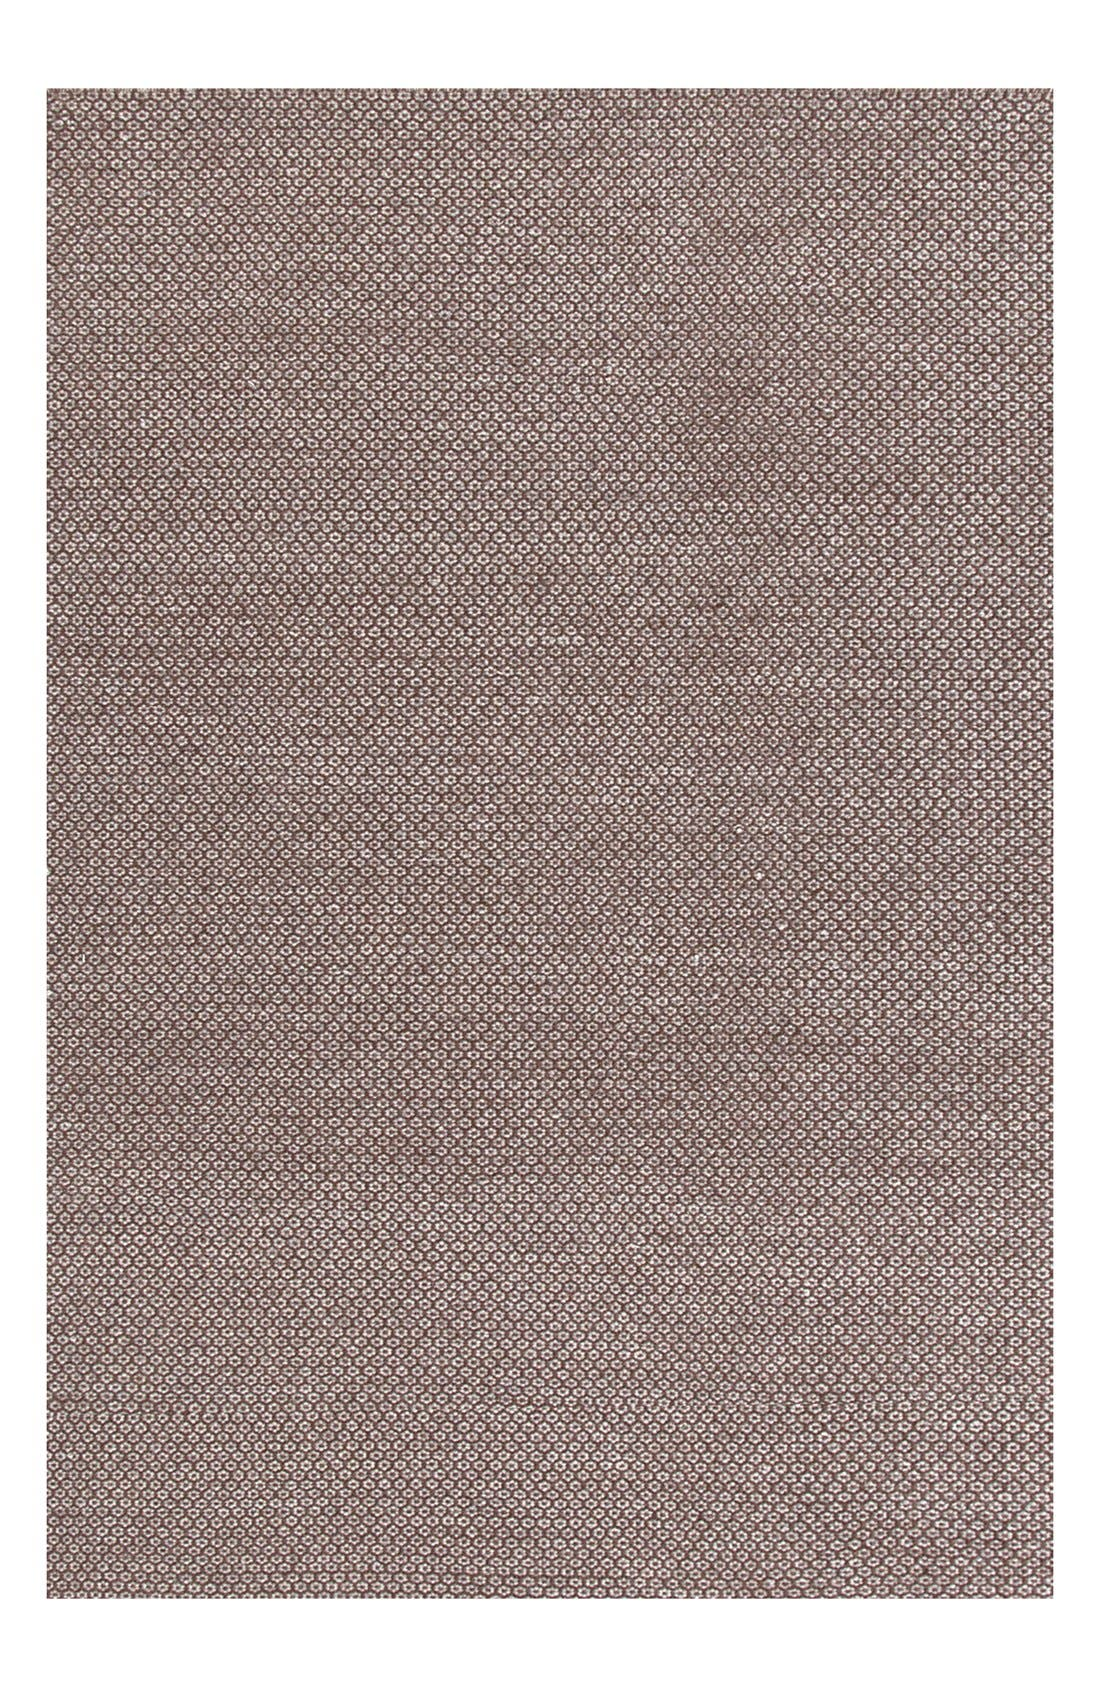 Main Image - Dash & Albert 'Honeycomb' Wool Rug